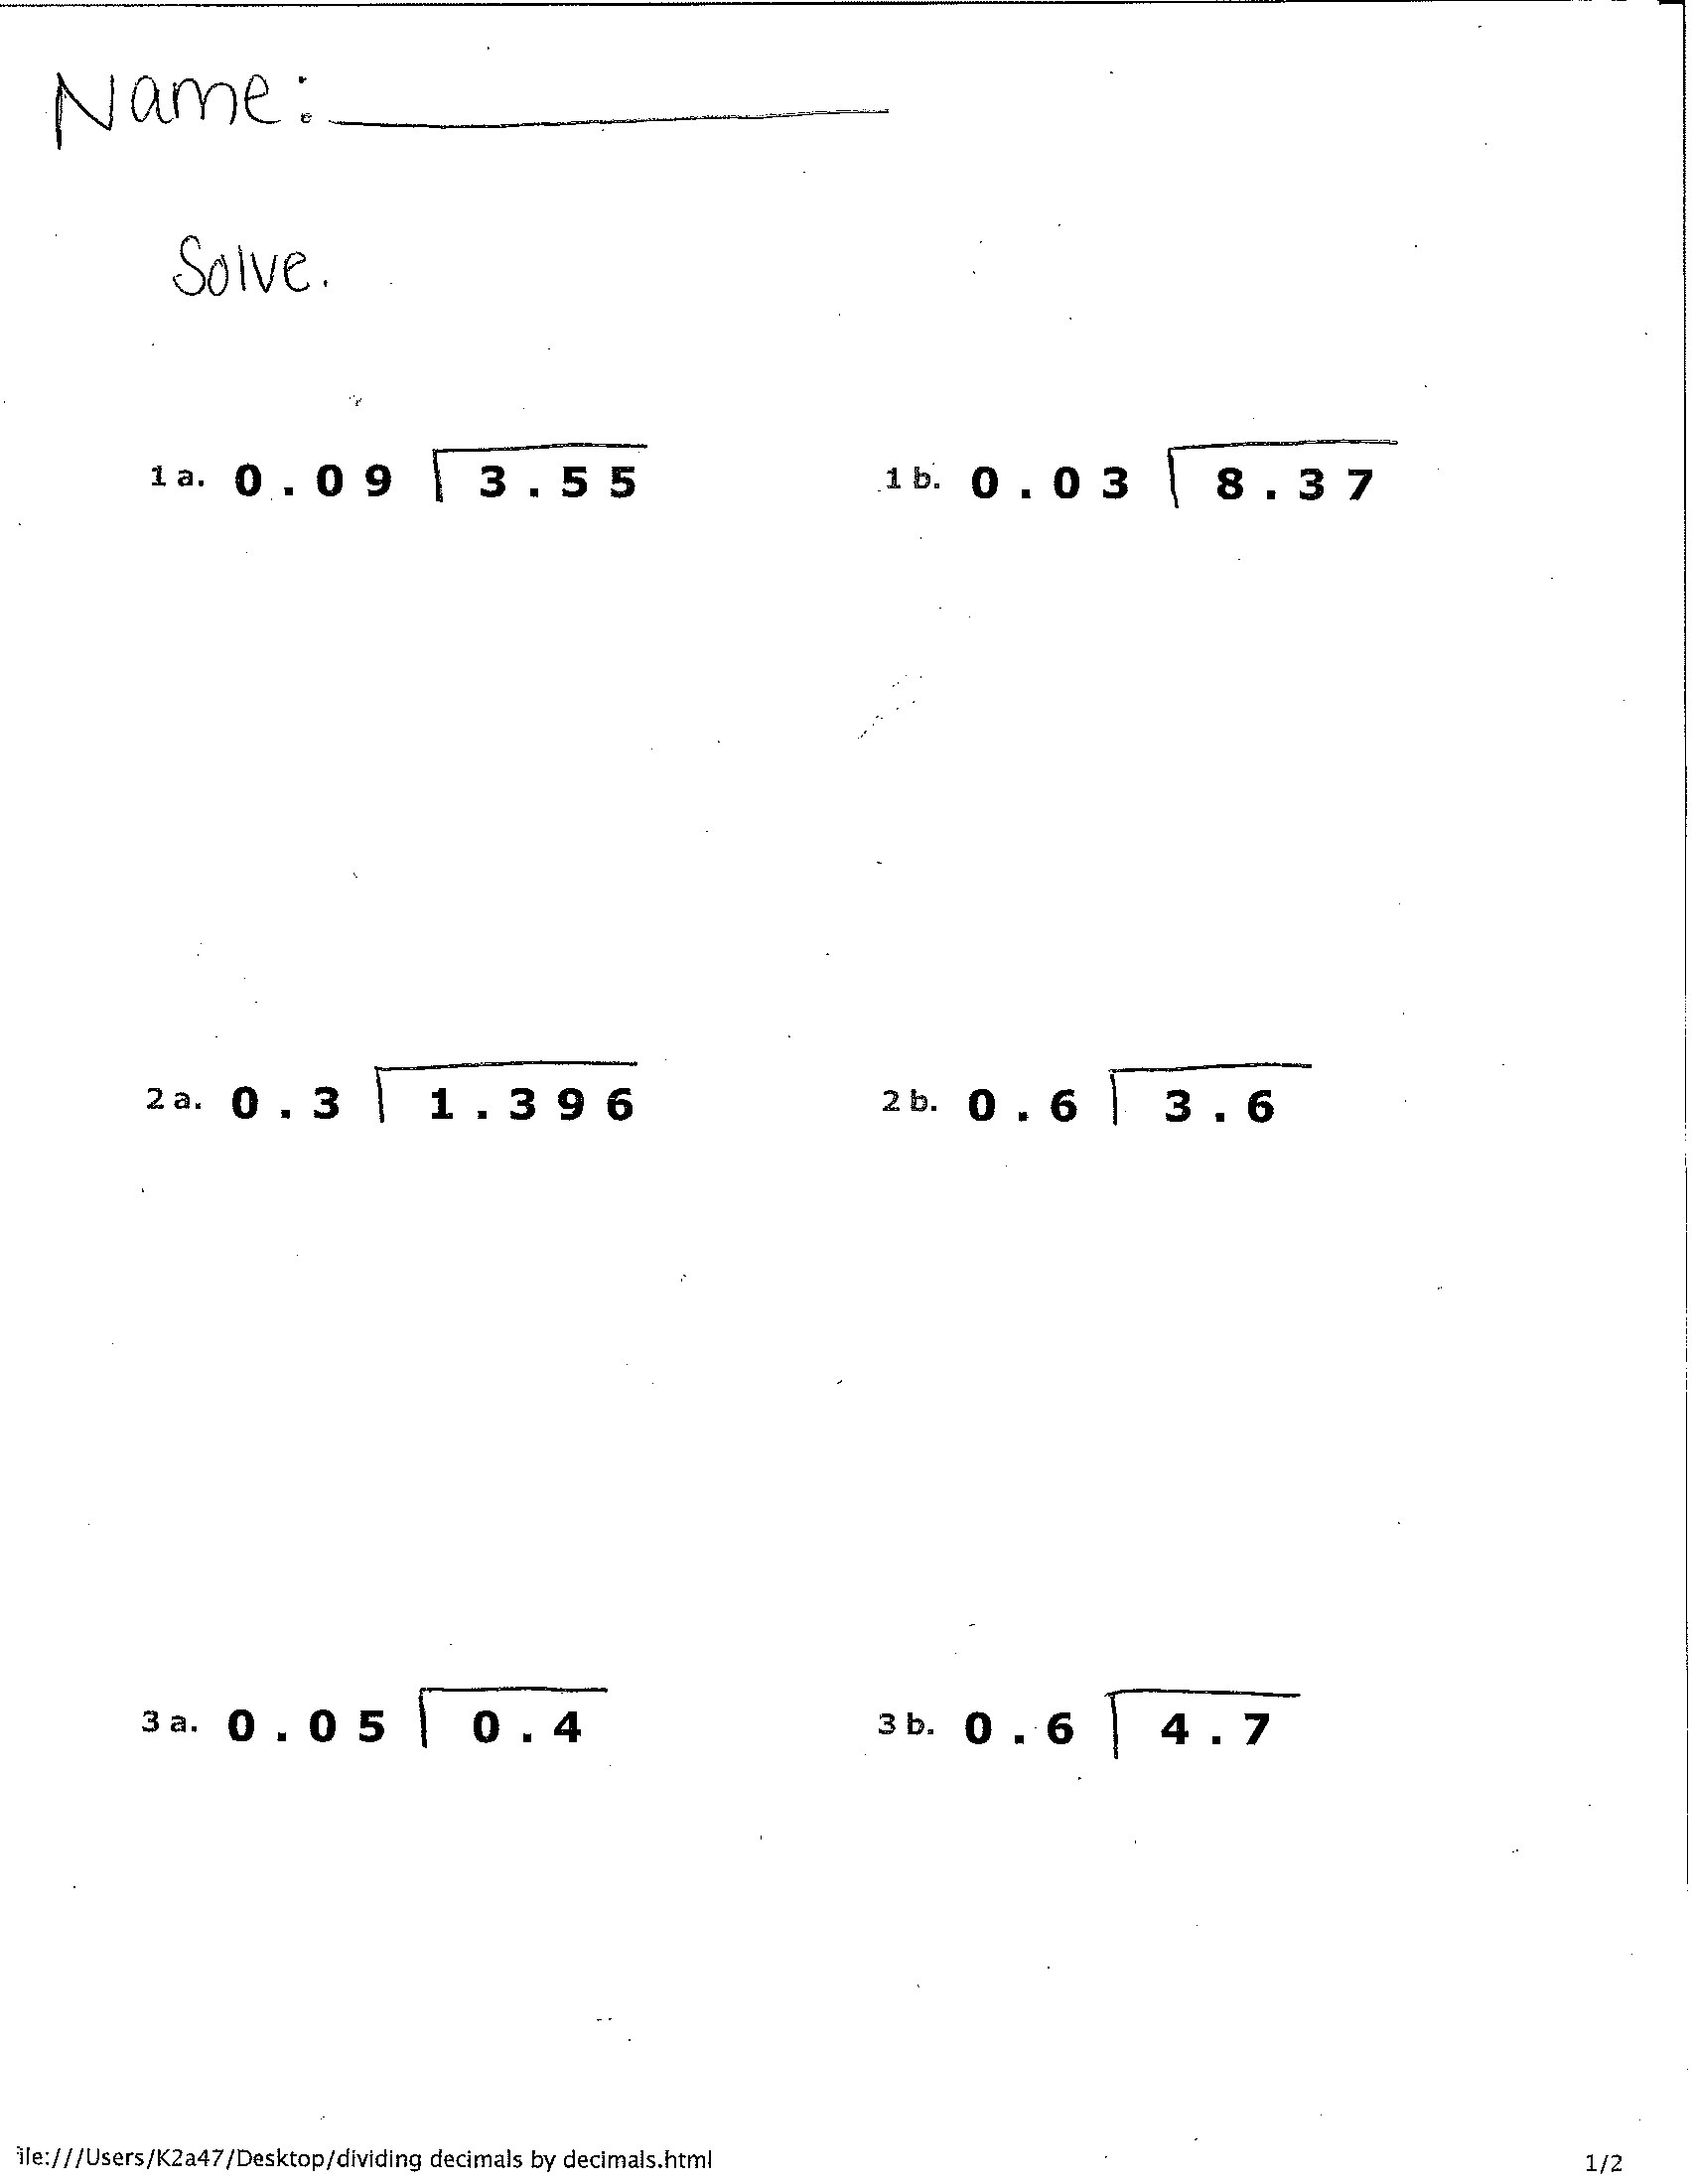 Worksheet 510660 Division with Decimals Worksheets Printable – Dividing Decimals by Decimals Worksheets